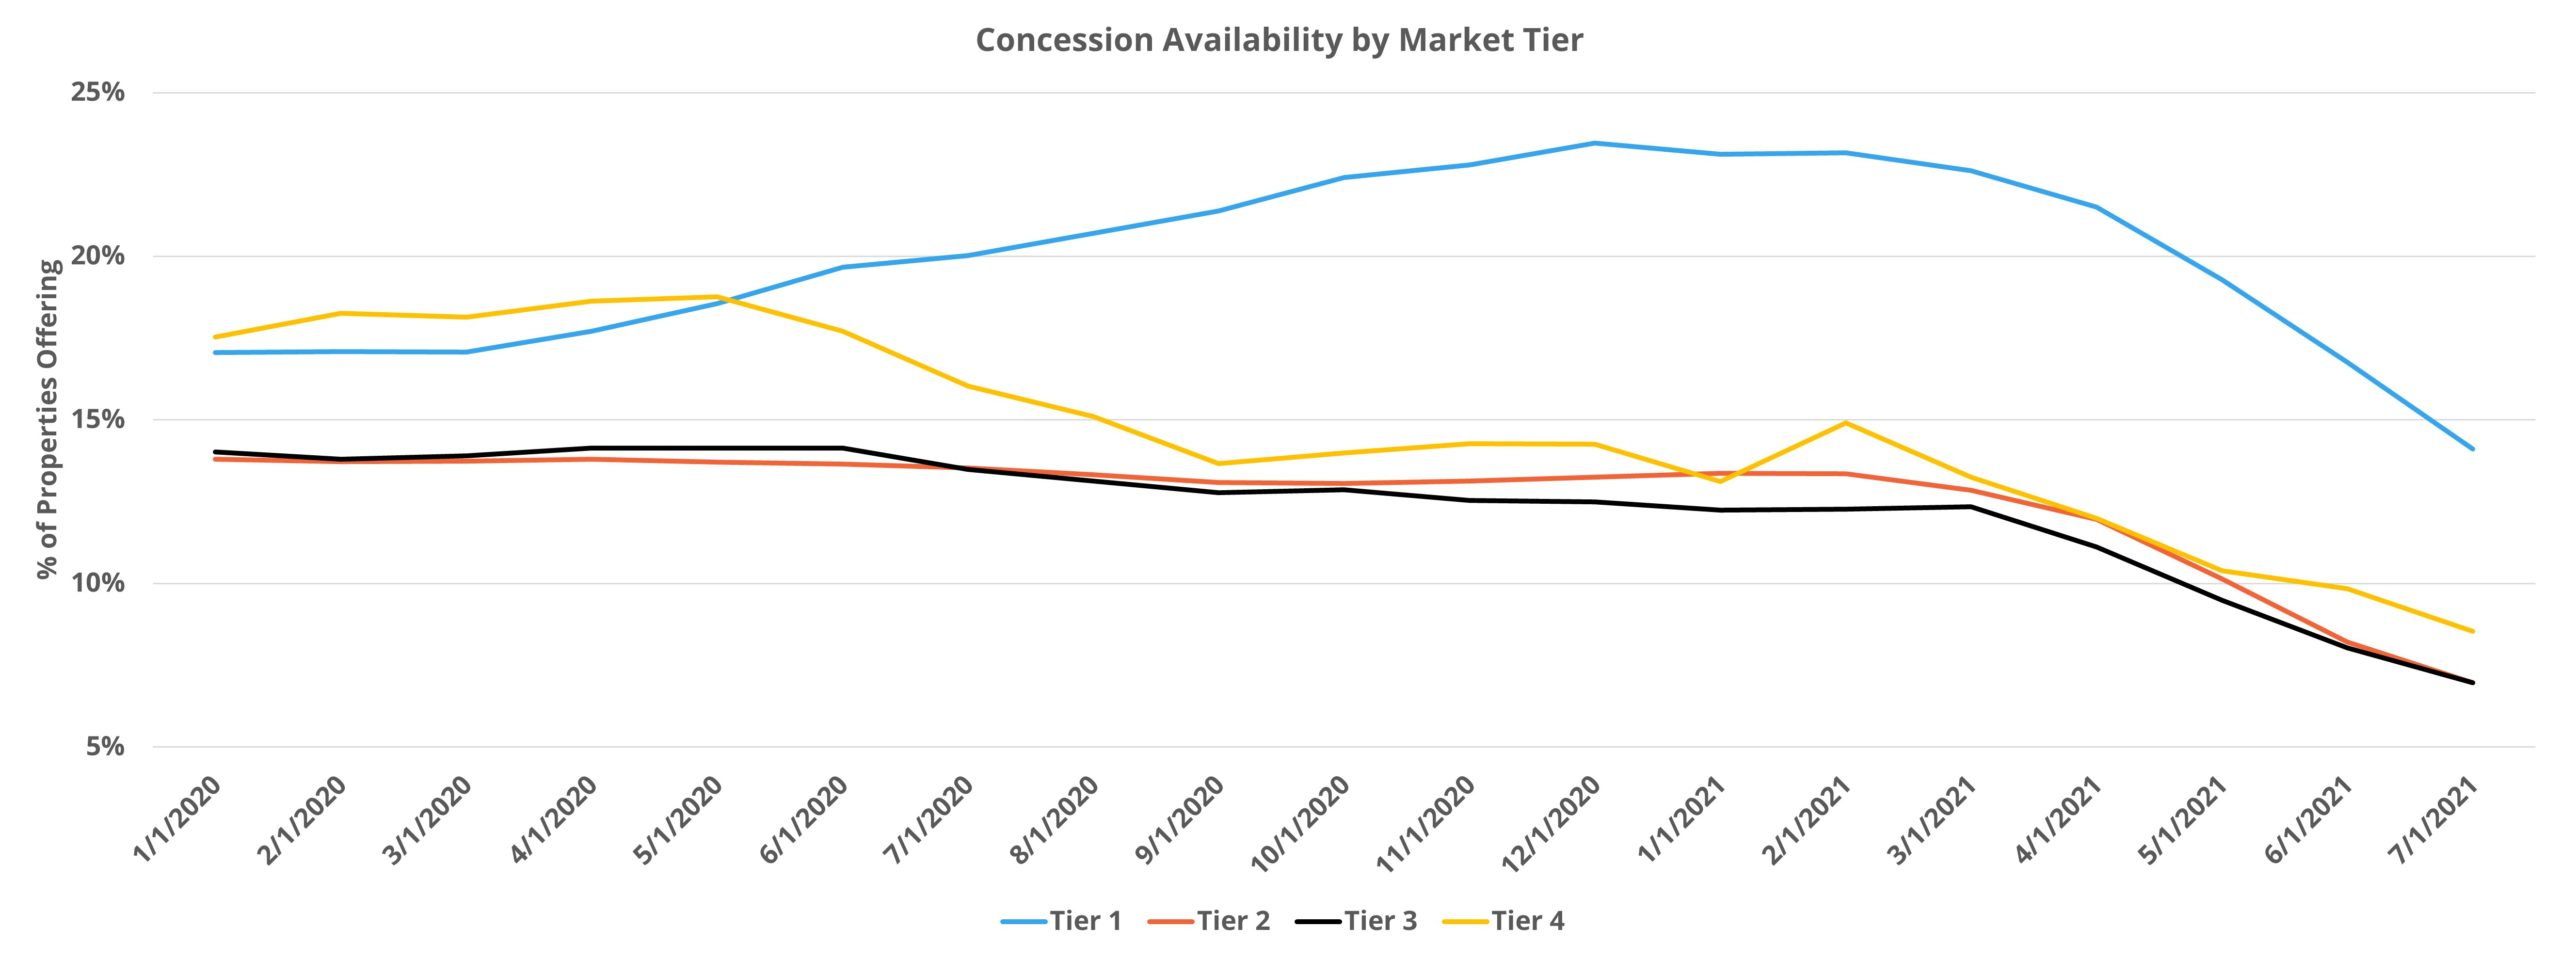 Concession Availability by Market Tier